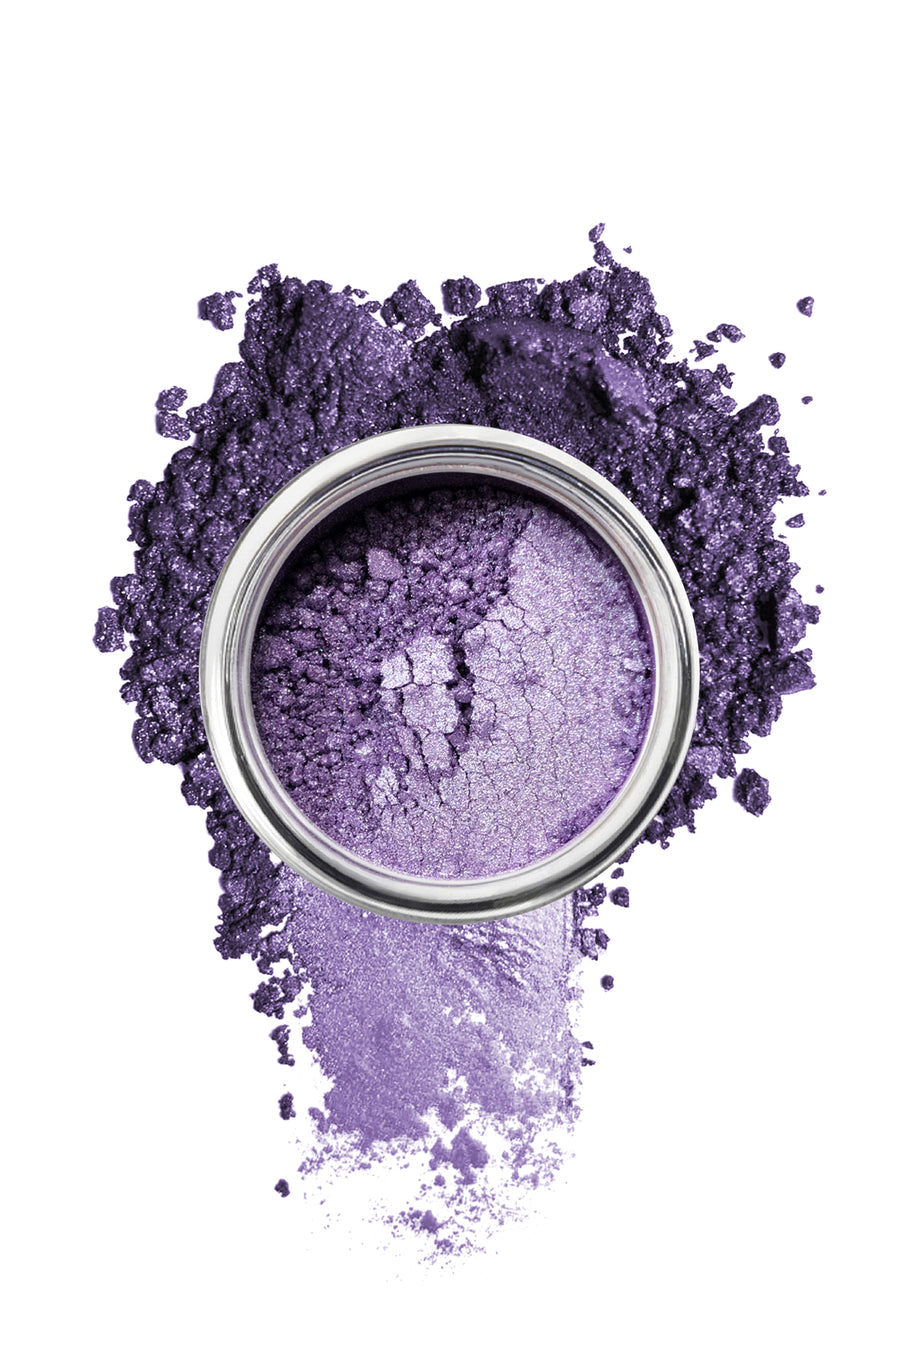 Shimmer Eyeshadow #22 - Heather Purple - Blend Mineral Cosmetics